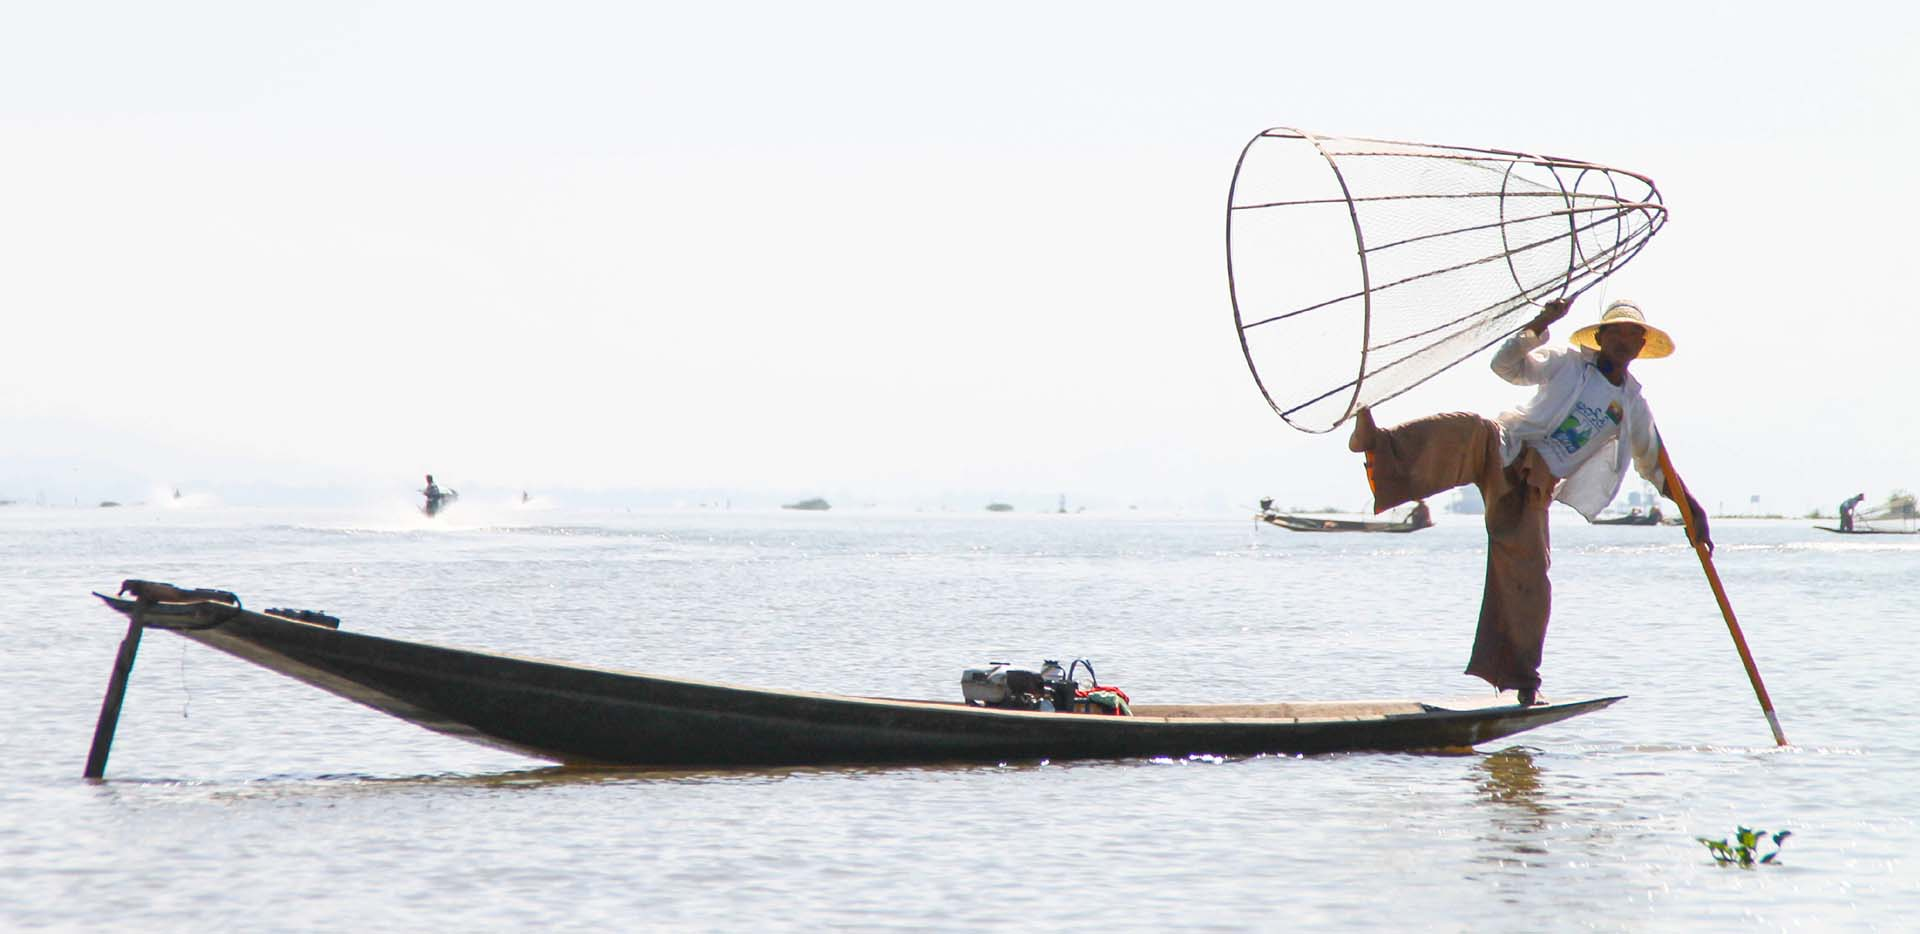 Leg Rowing Fisherman with Basket Net